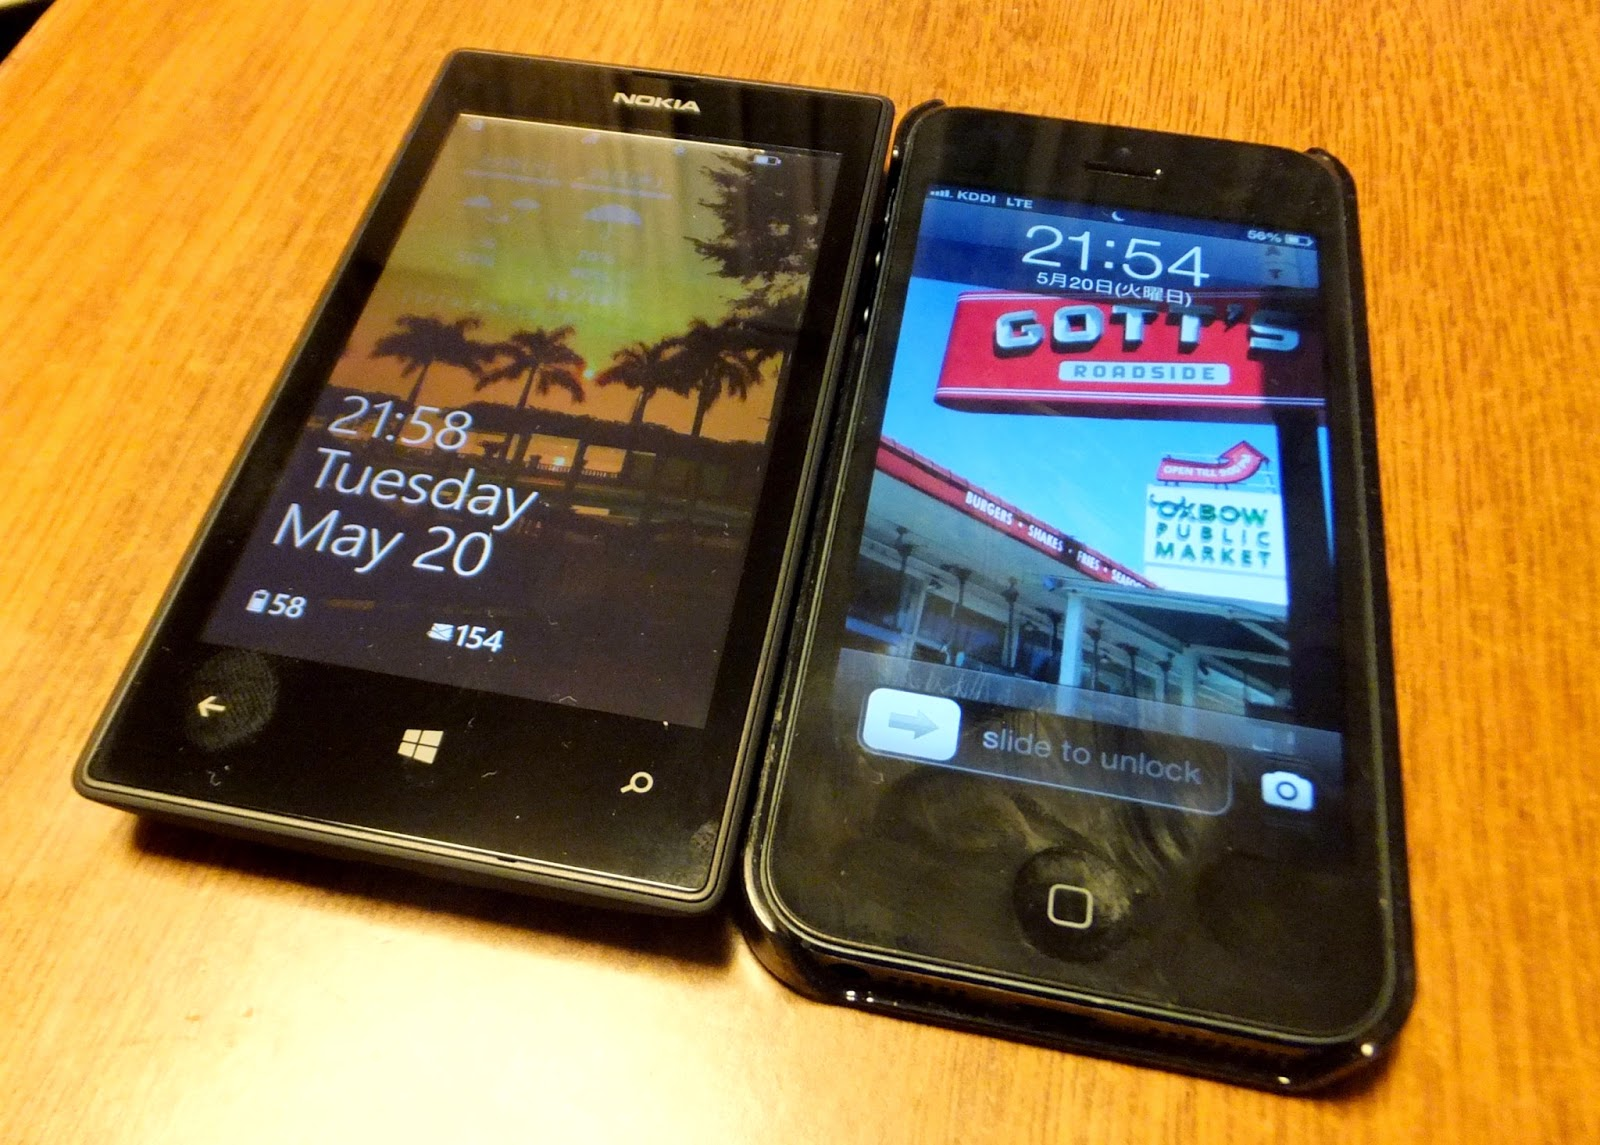 Nokia-Lumia525-with-iphone5